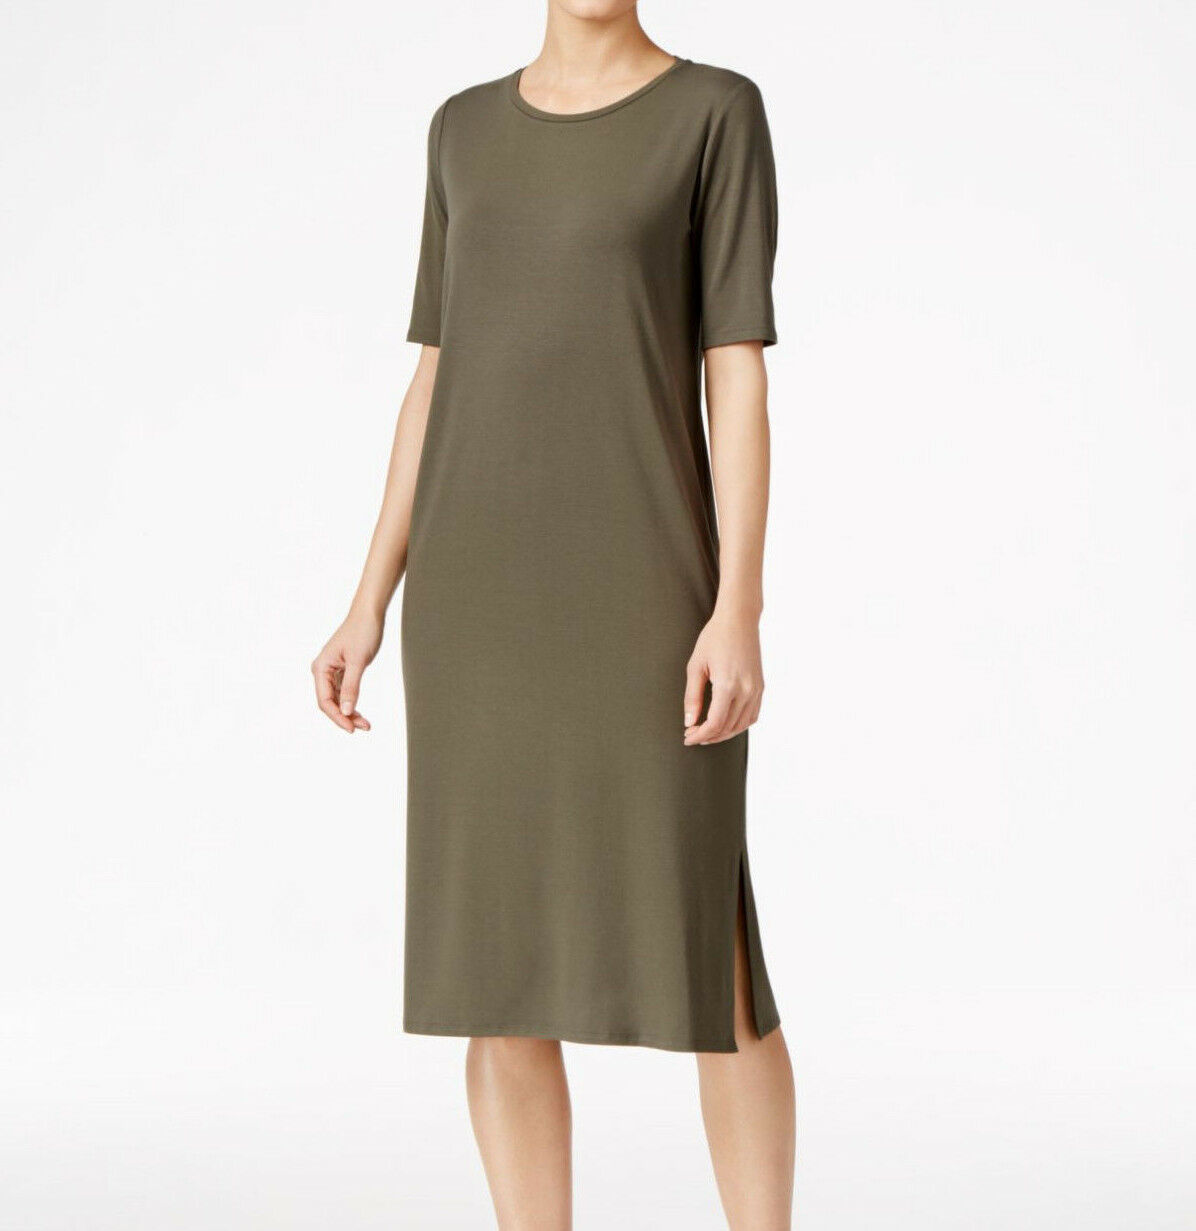 Eileen Fisher Oregano Round Neck Midi T-Shirt Dress New Petites PS